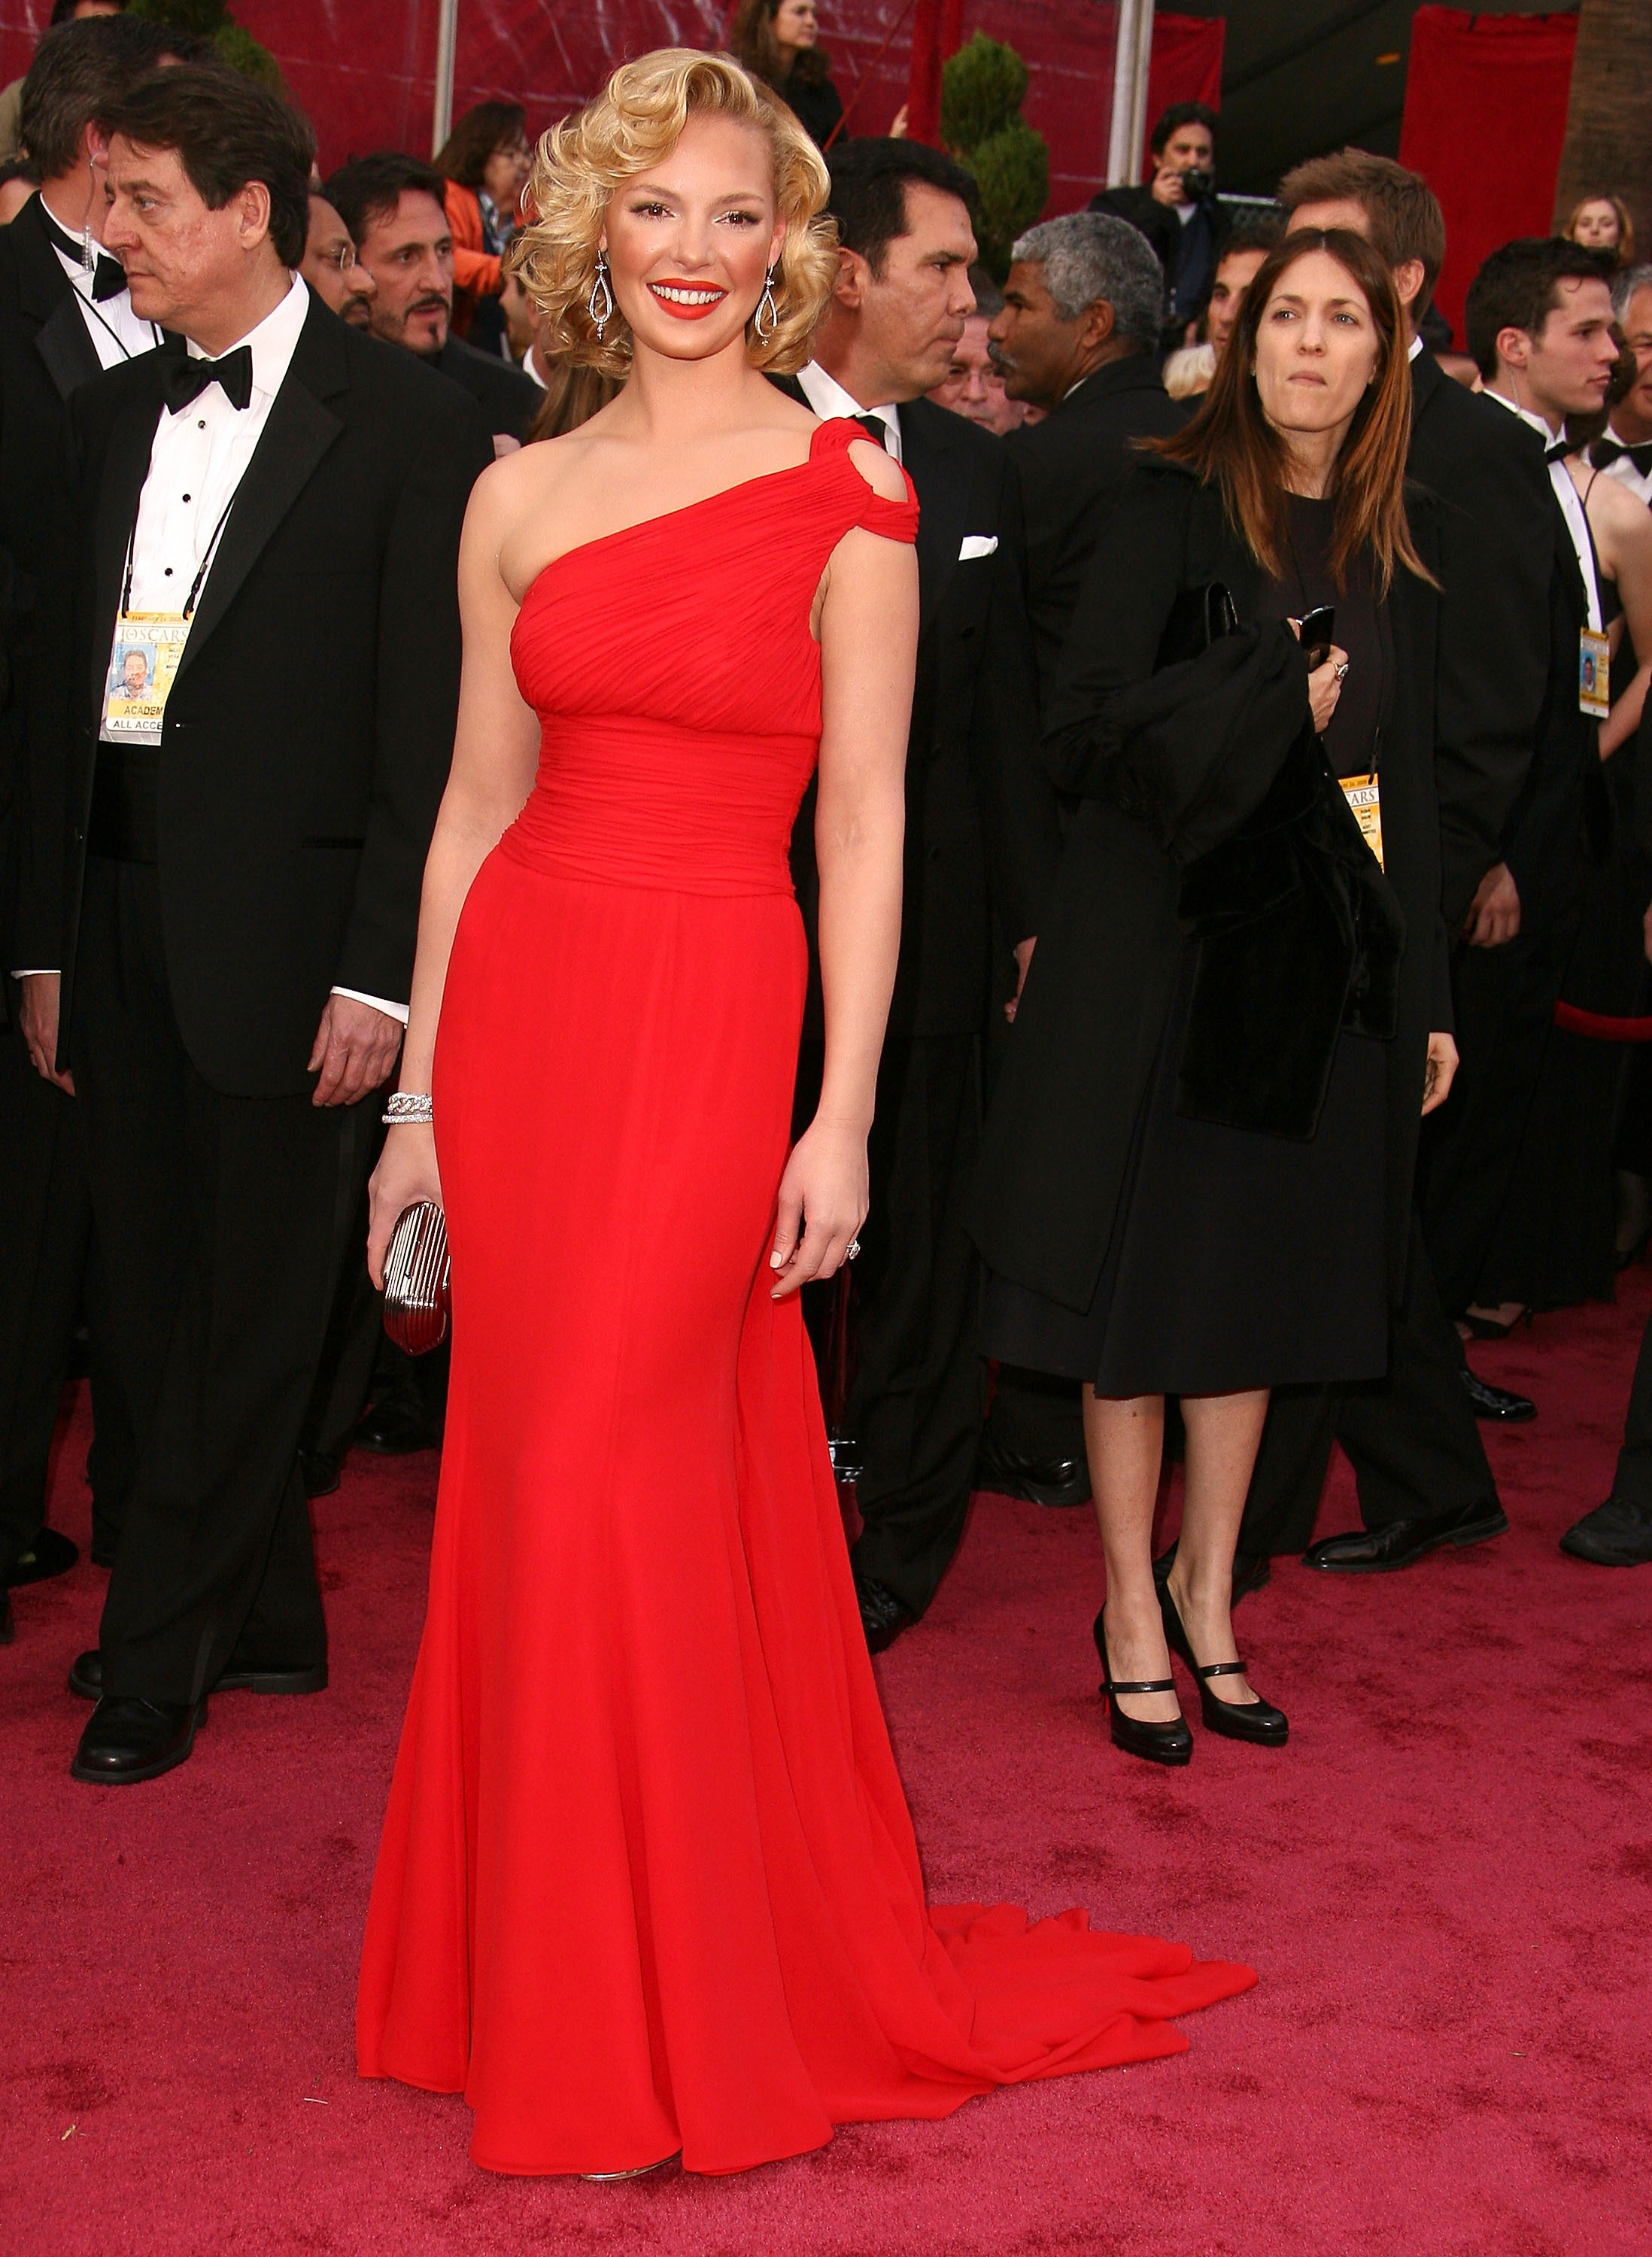 Katherine Heigl attends the 80th Annual Academy Awards at the Kodak Theatre in Los Angeles, California on Feb. 24, 2008.